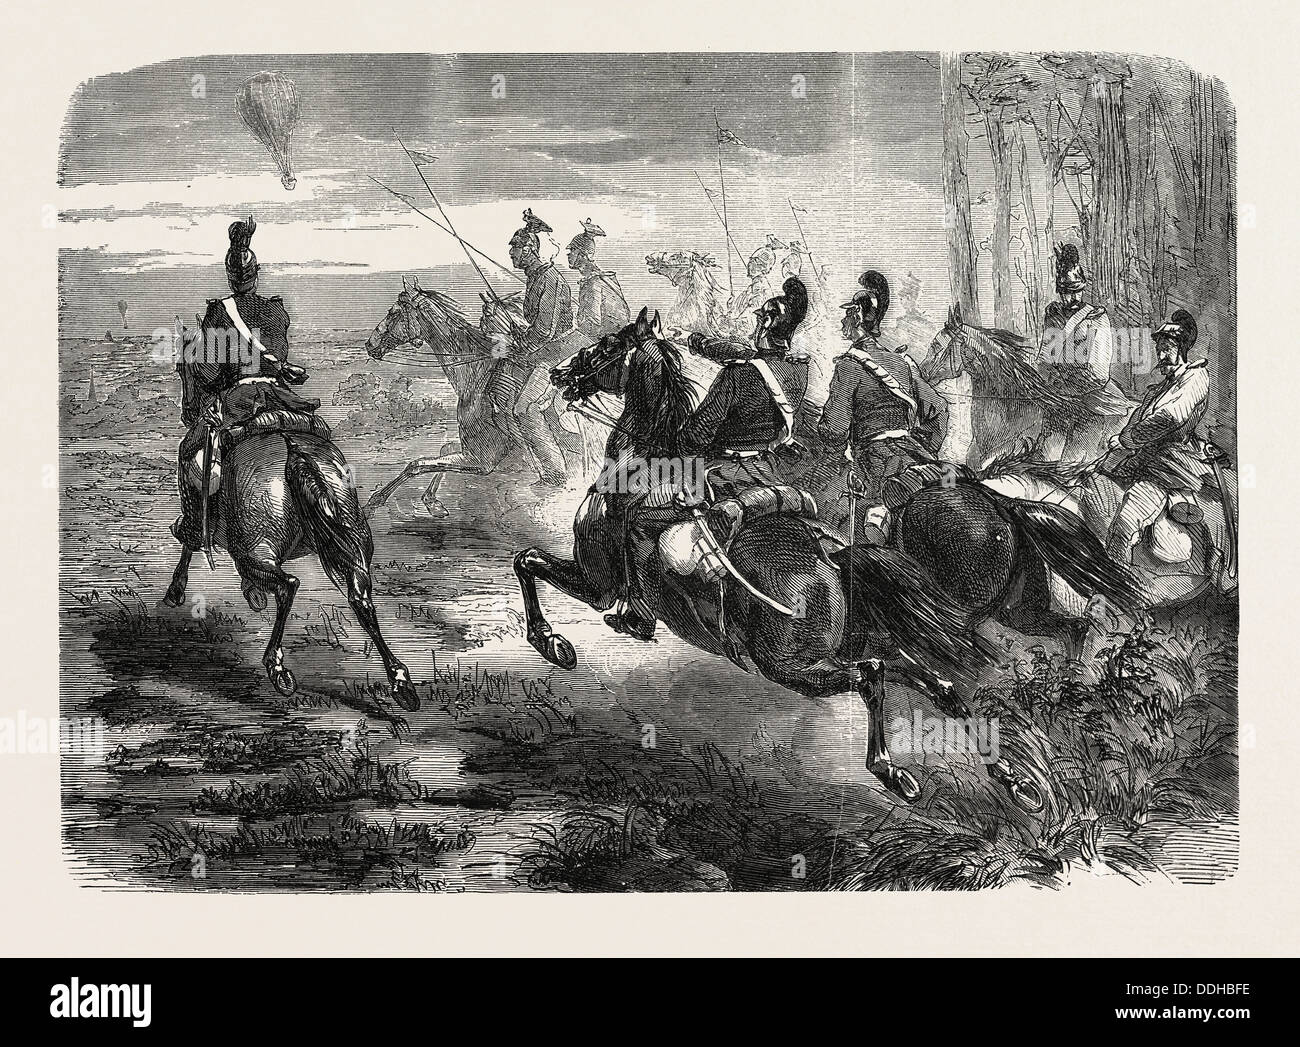 FRANCO-PRUSSIAN WAR: LIGHT BAVARIAN CAVALRY PURSUING A FRENCH MAIL BALLOON - Stock Image